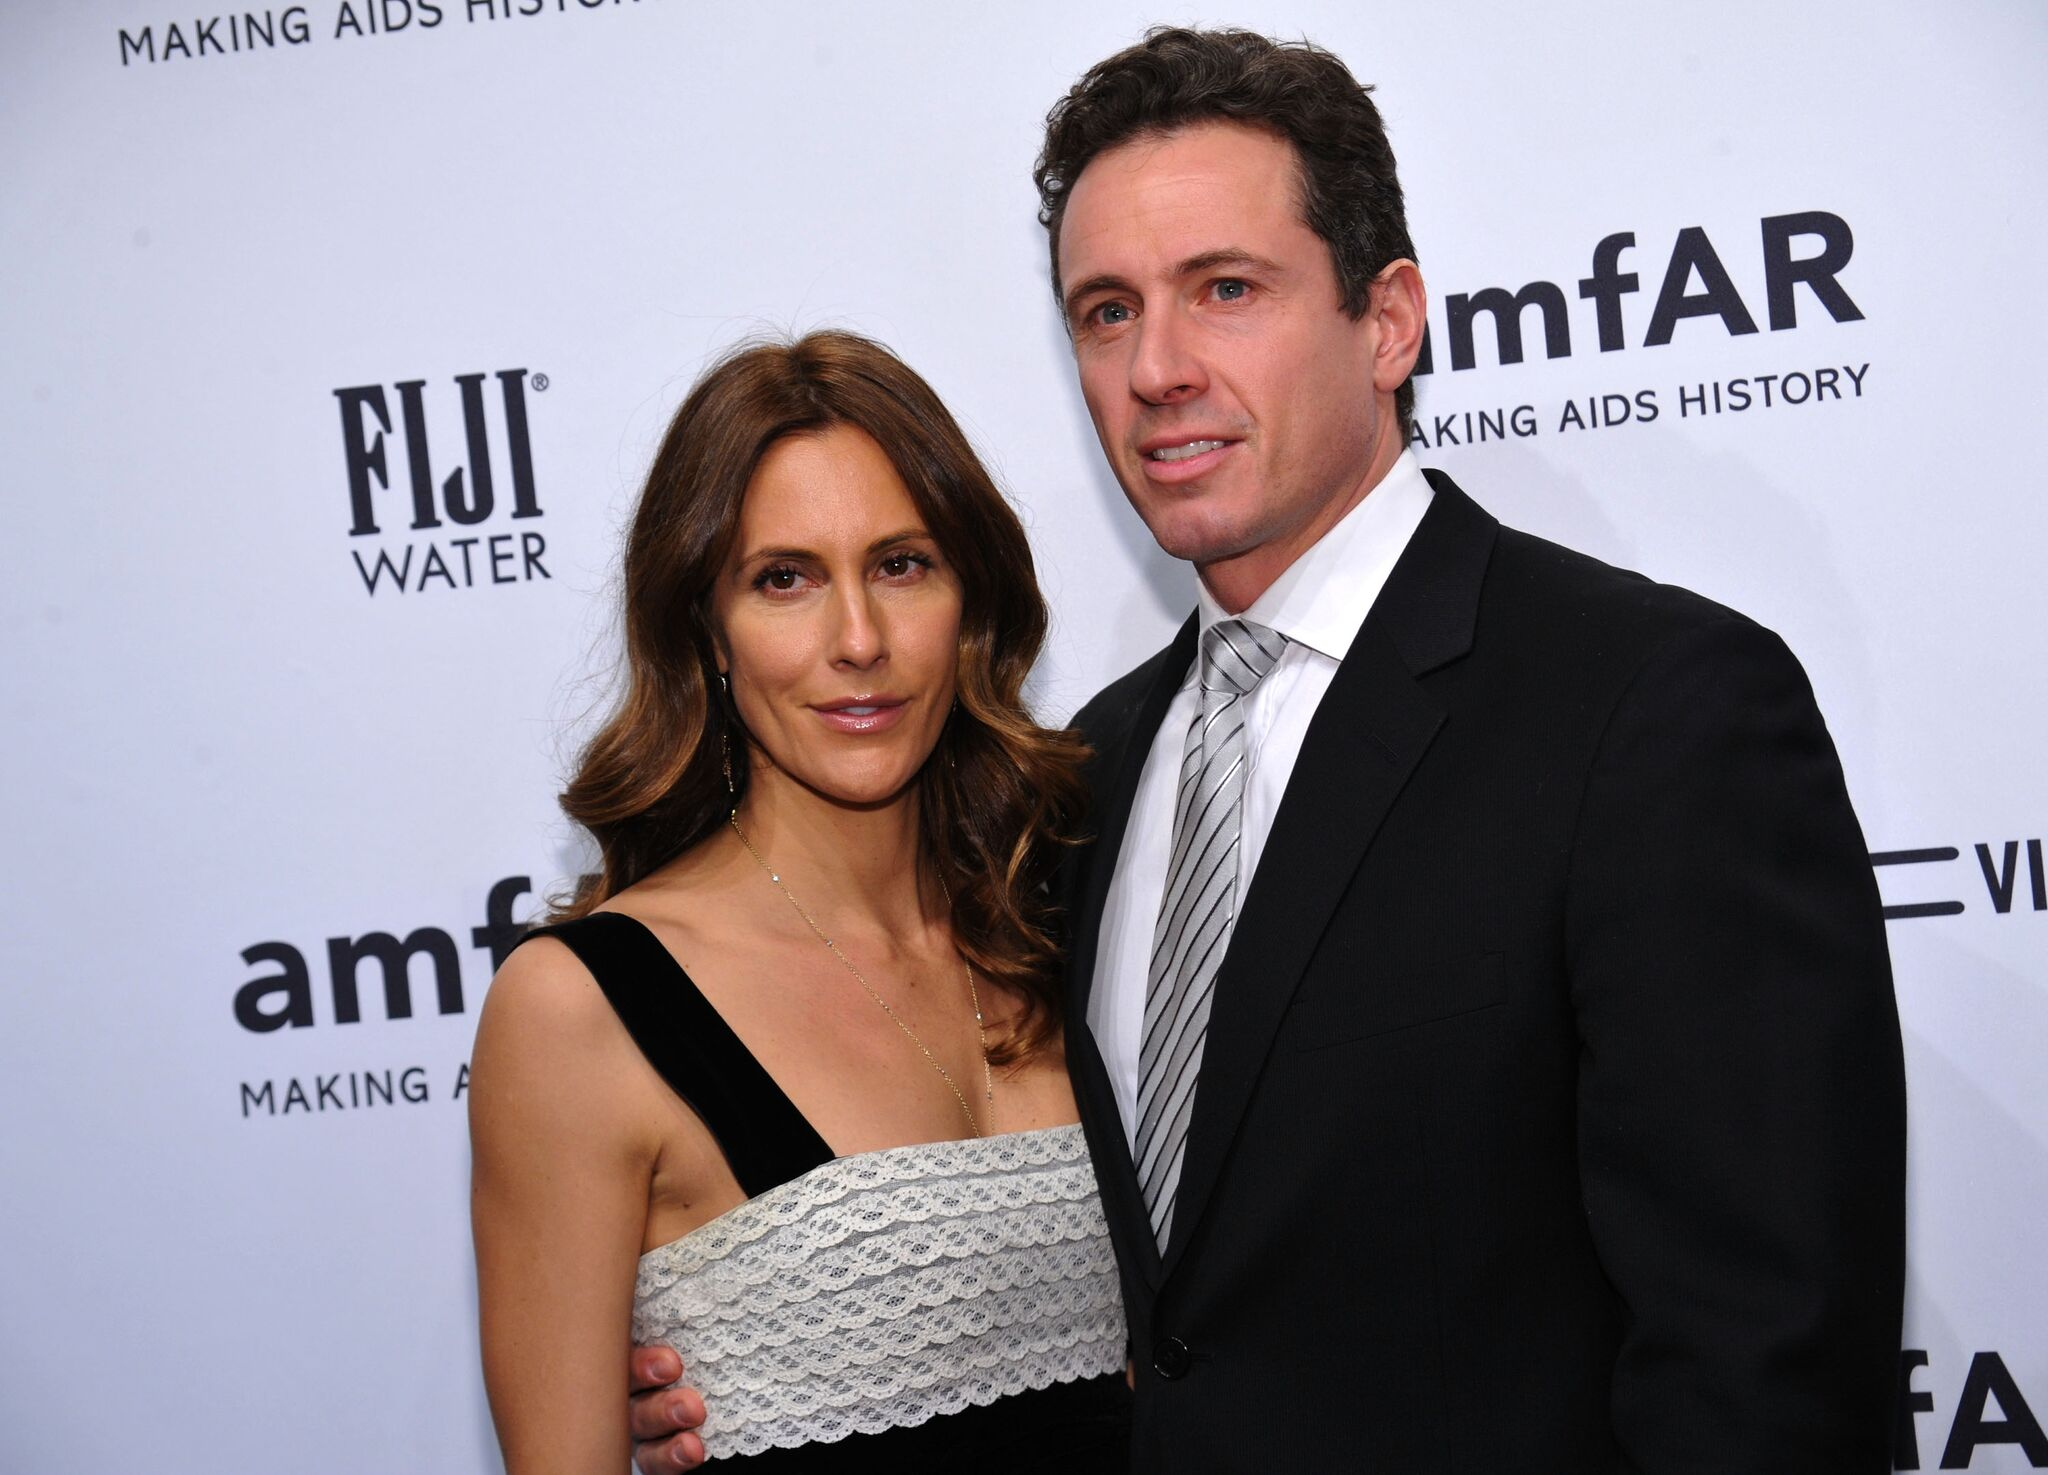 Cristina Cuomo and Chris Cuomo attend the amfAR New York Gala to kick off Fall 2013 Fashion Week at Cipriani Wall Street on February 6, 2013 in New York City | Photo: Getty Images